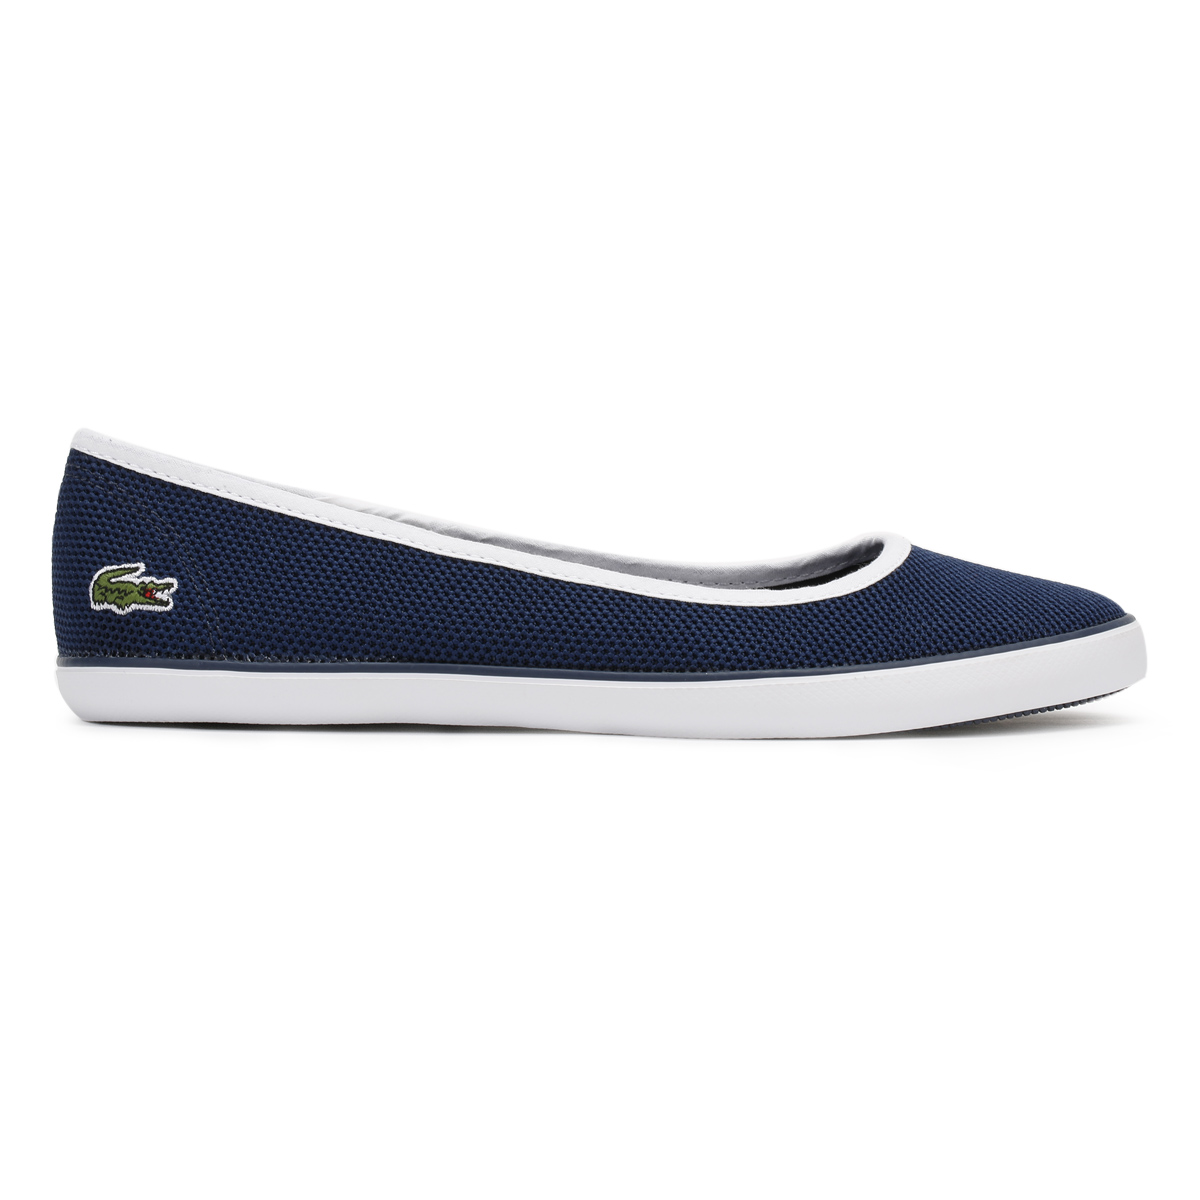 lacoste womens ballerina shoes textured textile upper ladies casual flats ebay. Black Bedroom Furniture Sets. Home Design Ideas